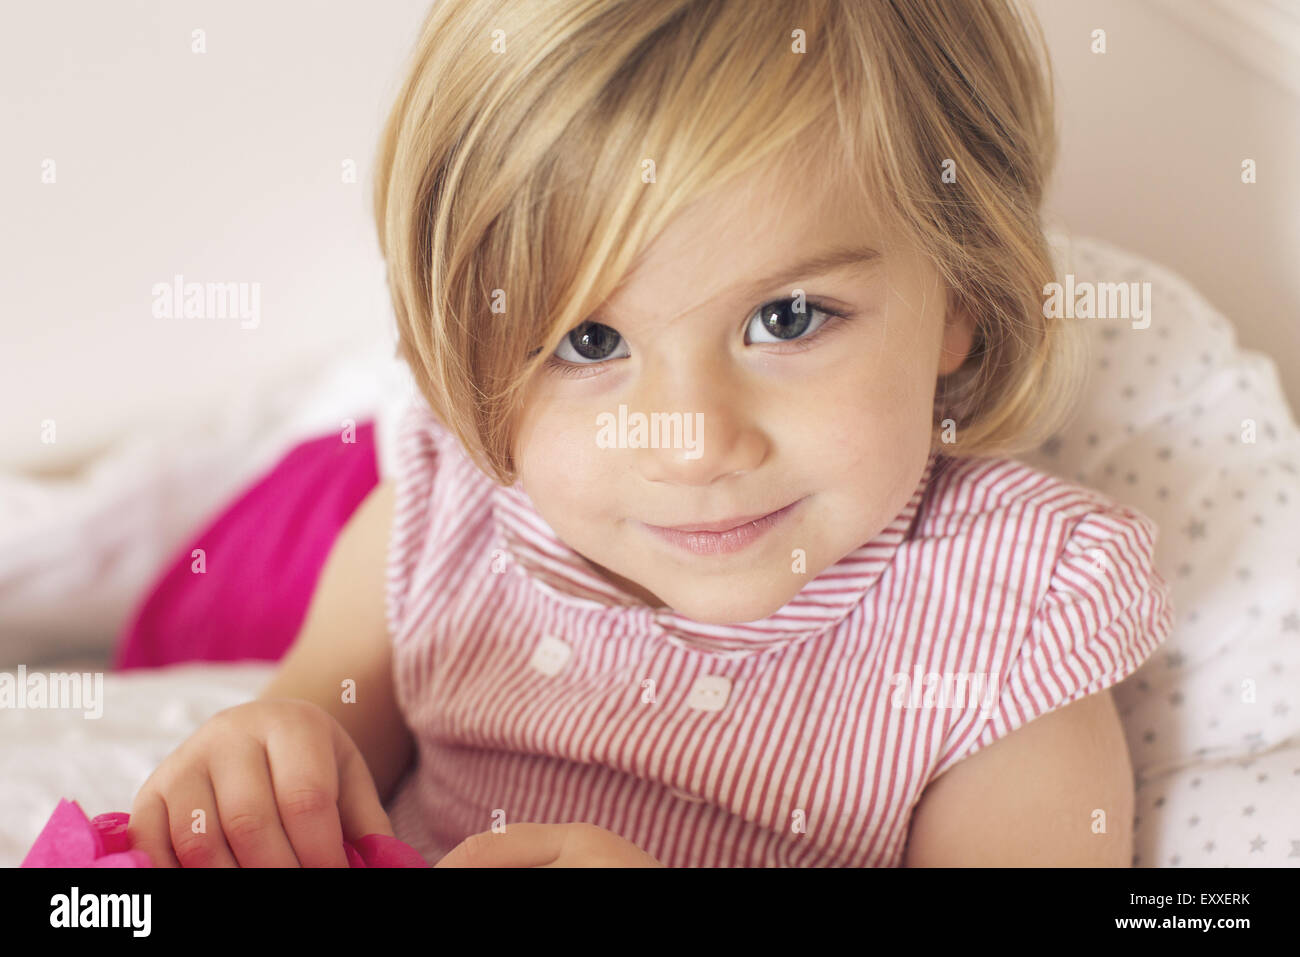 Little Girl, Retrato Imagen De Stock